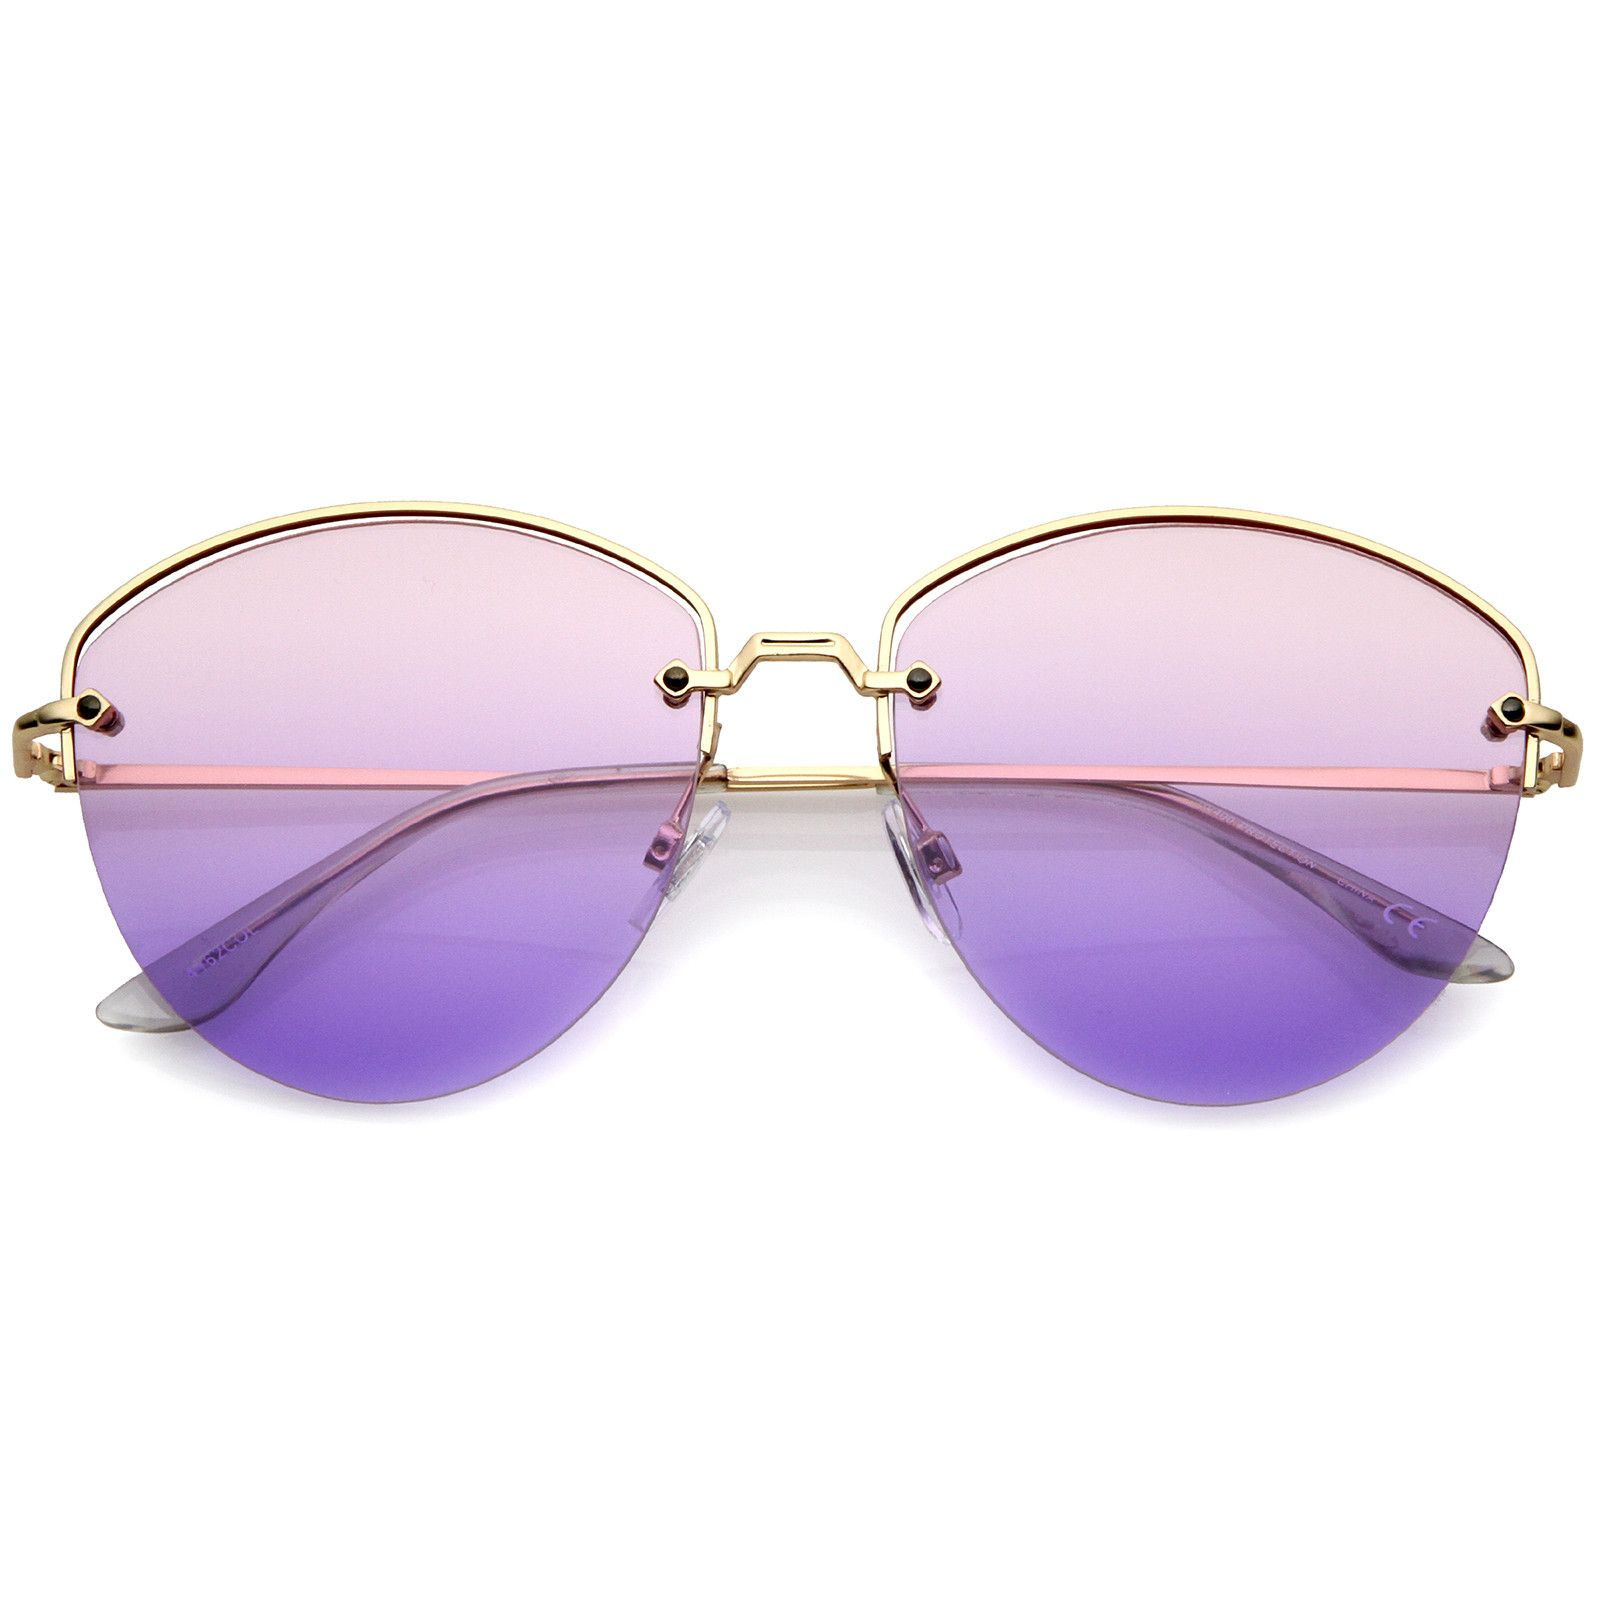 ffb86f6397 ... these metal sunglasses are designed with a semi-rimless frame and  gradient colored flat lenses. Ultra slim metal temples and a geometric-s